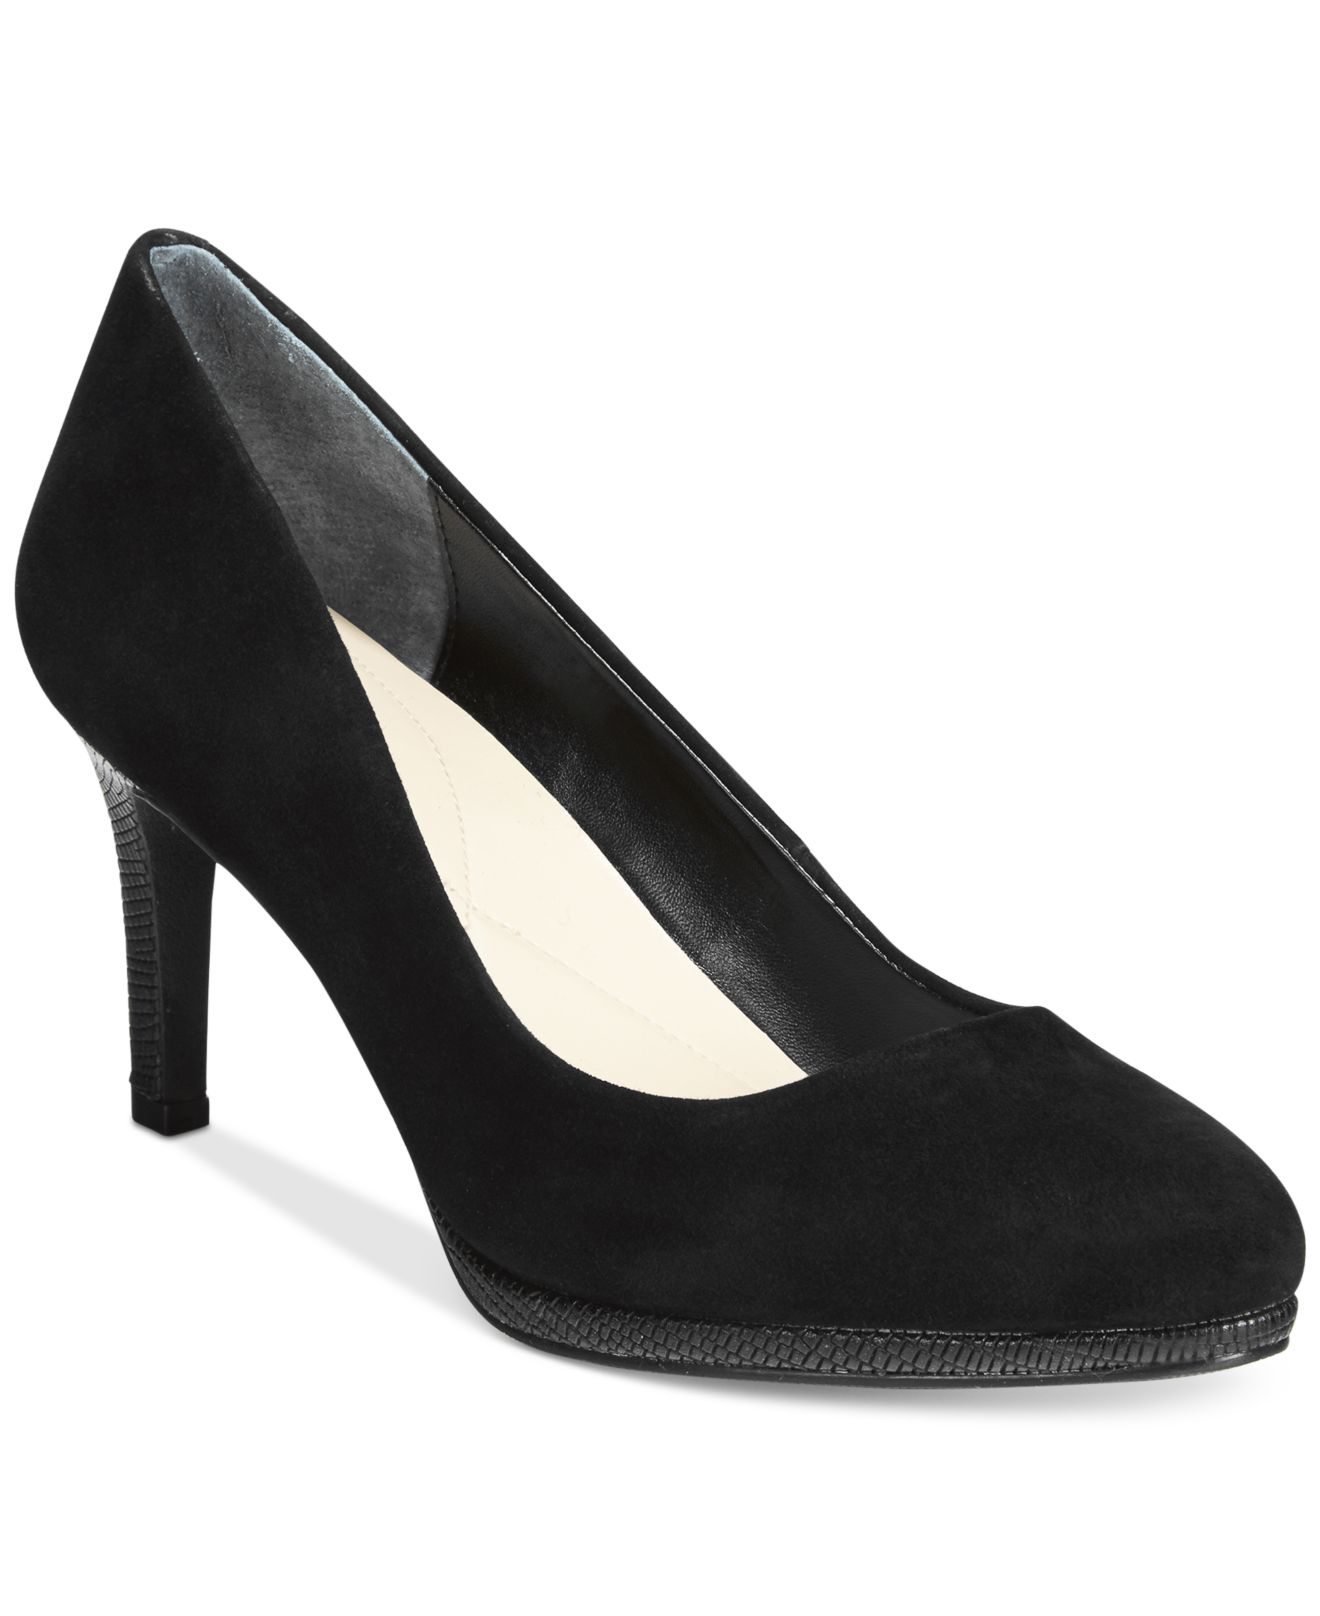 Macy's coupons womens shoes